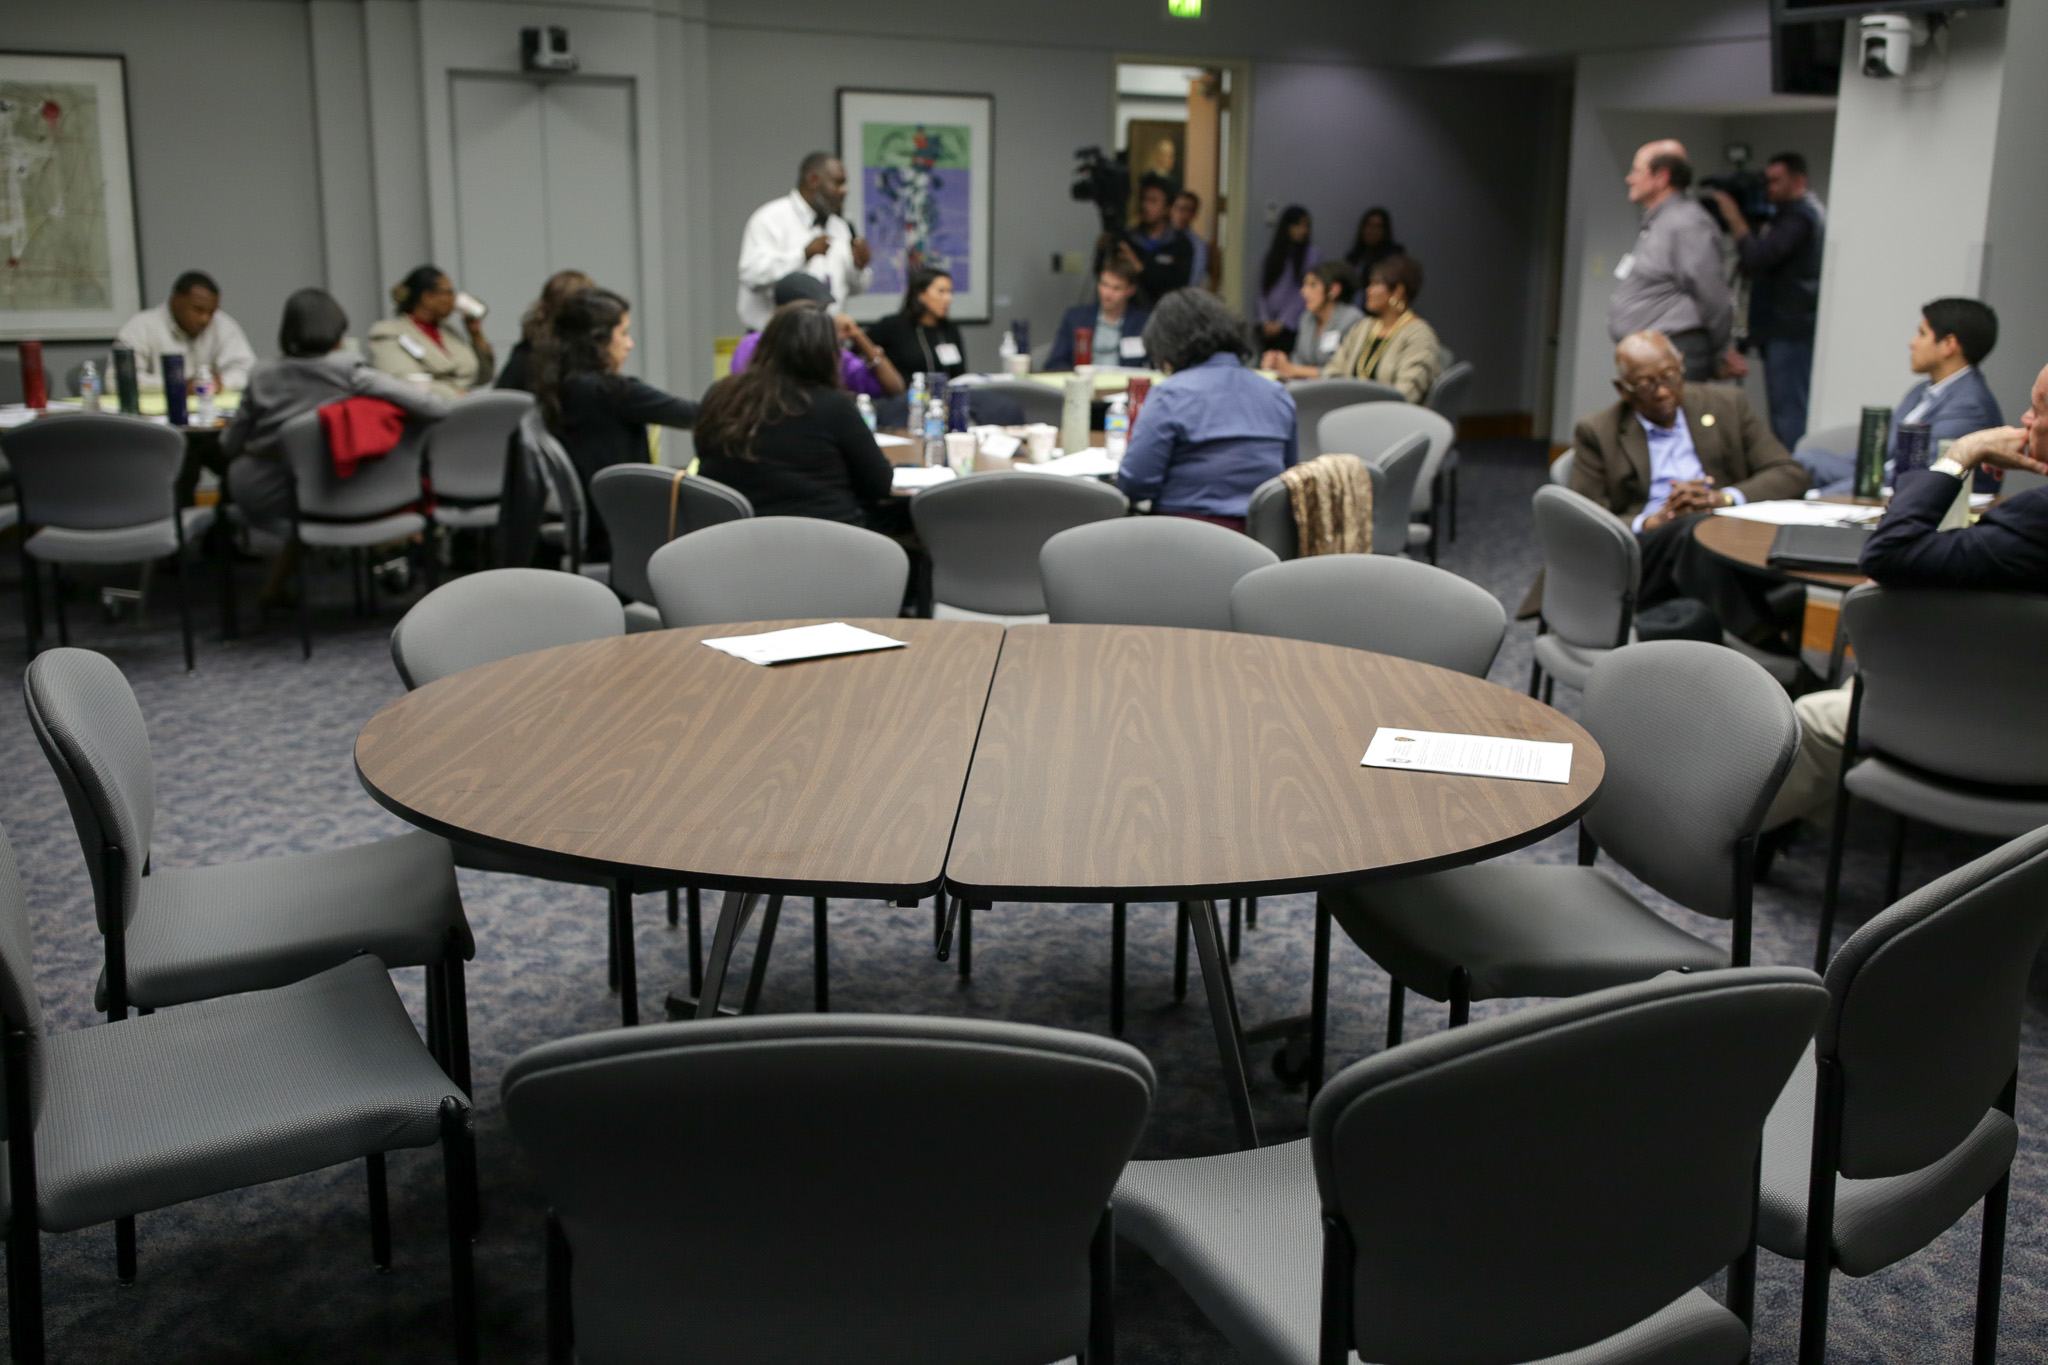 The session included many absent appointees leaving empty chairs throughout the room.